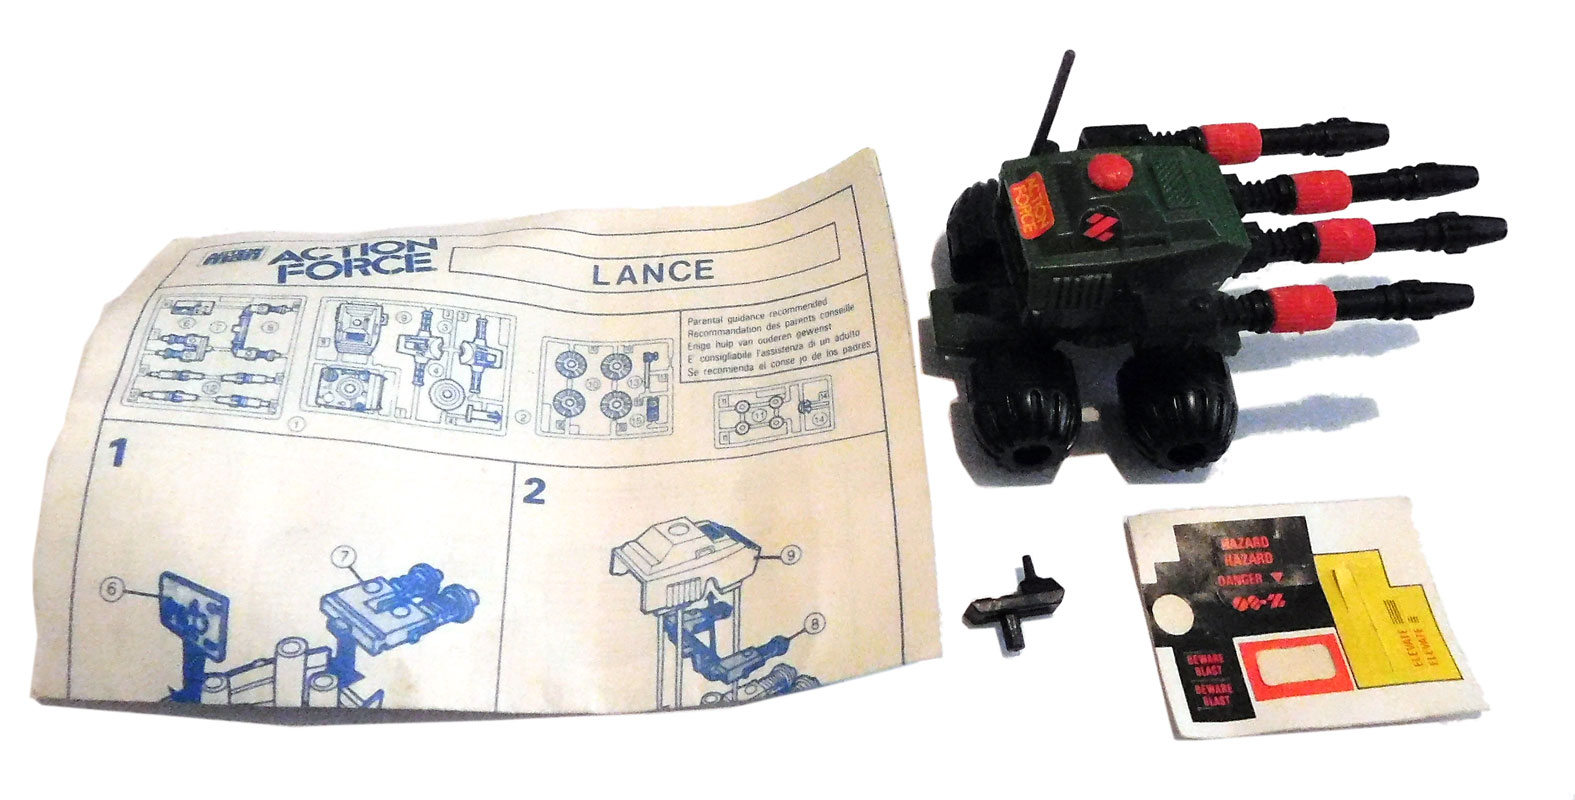 Action Force Z Force Lance